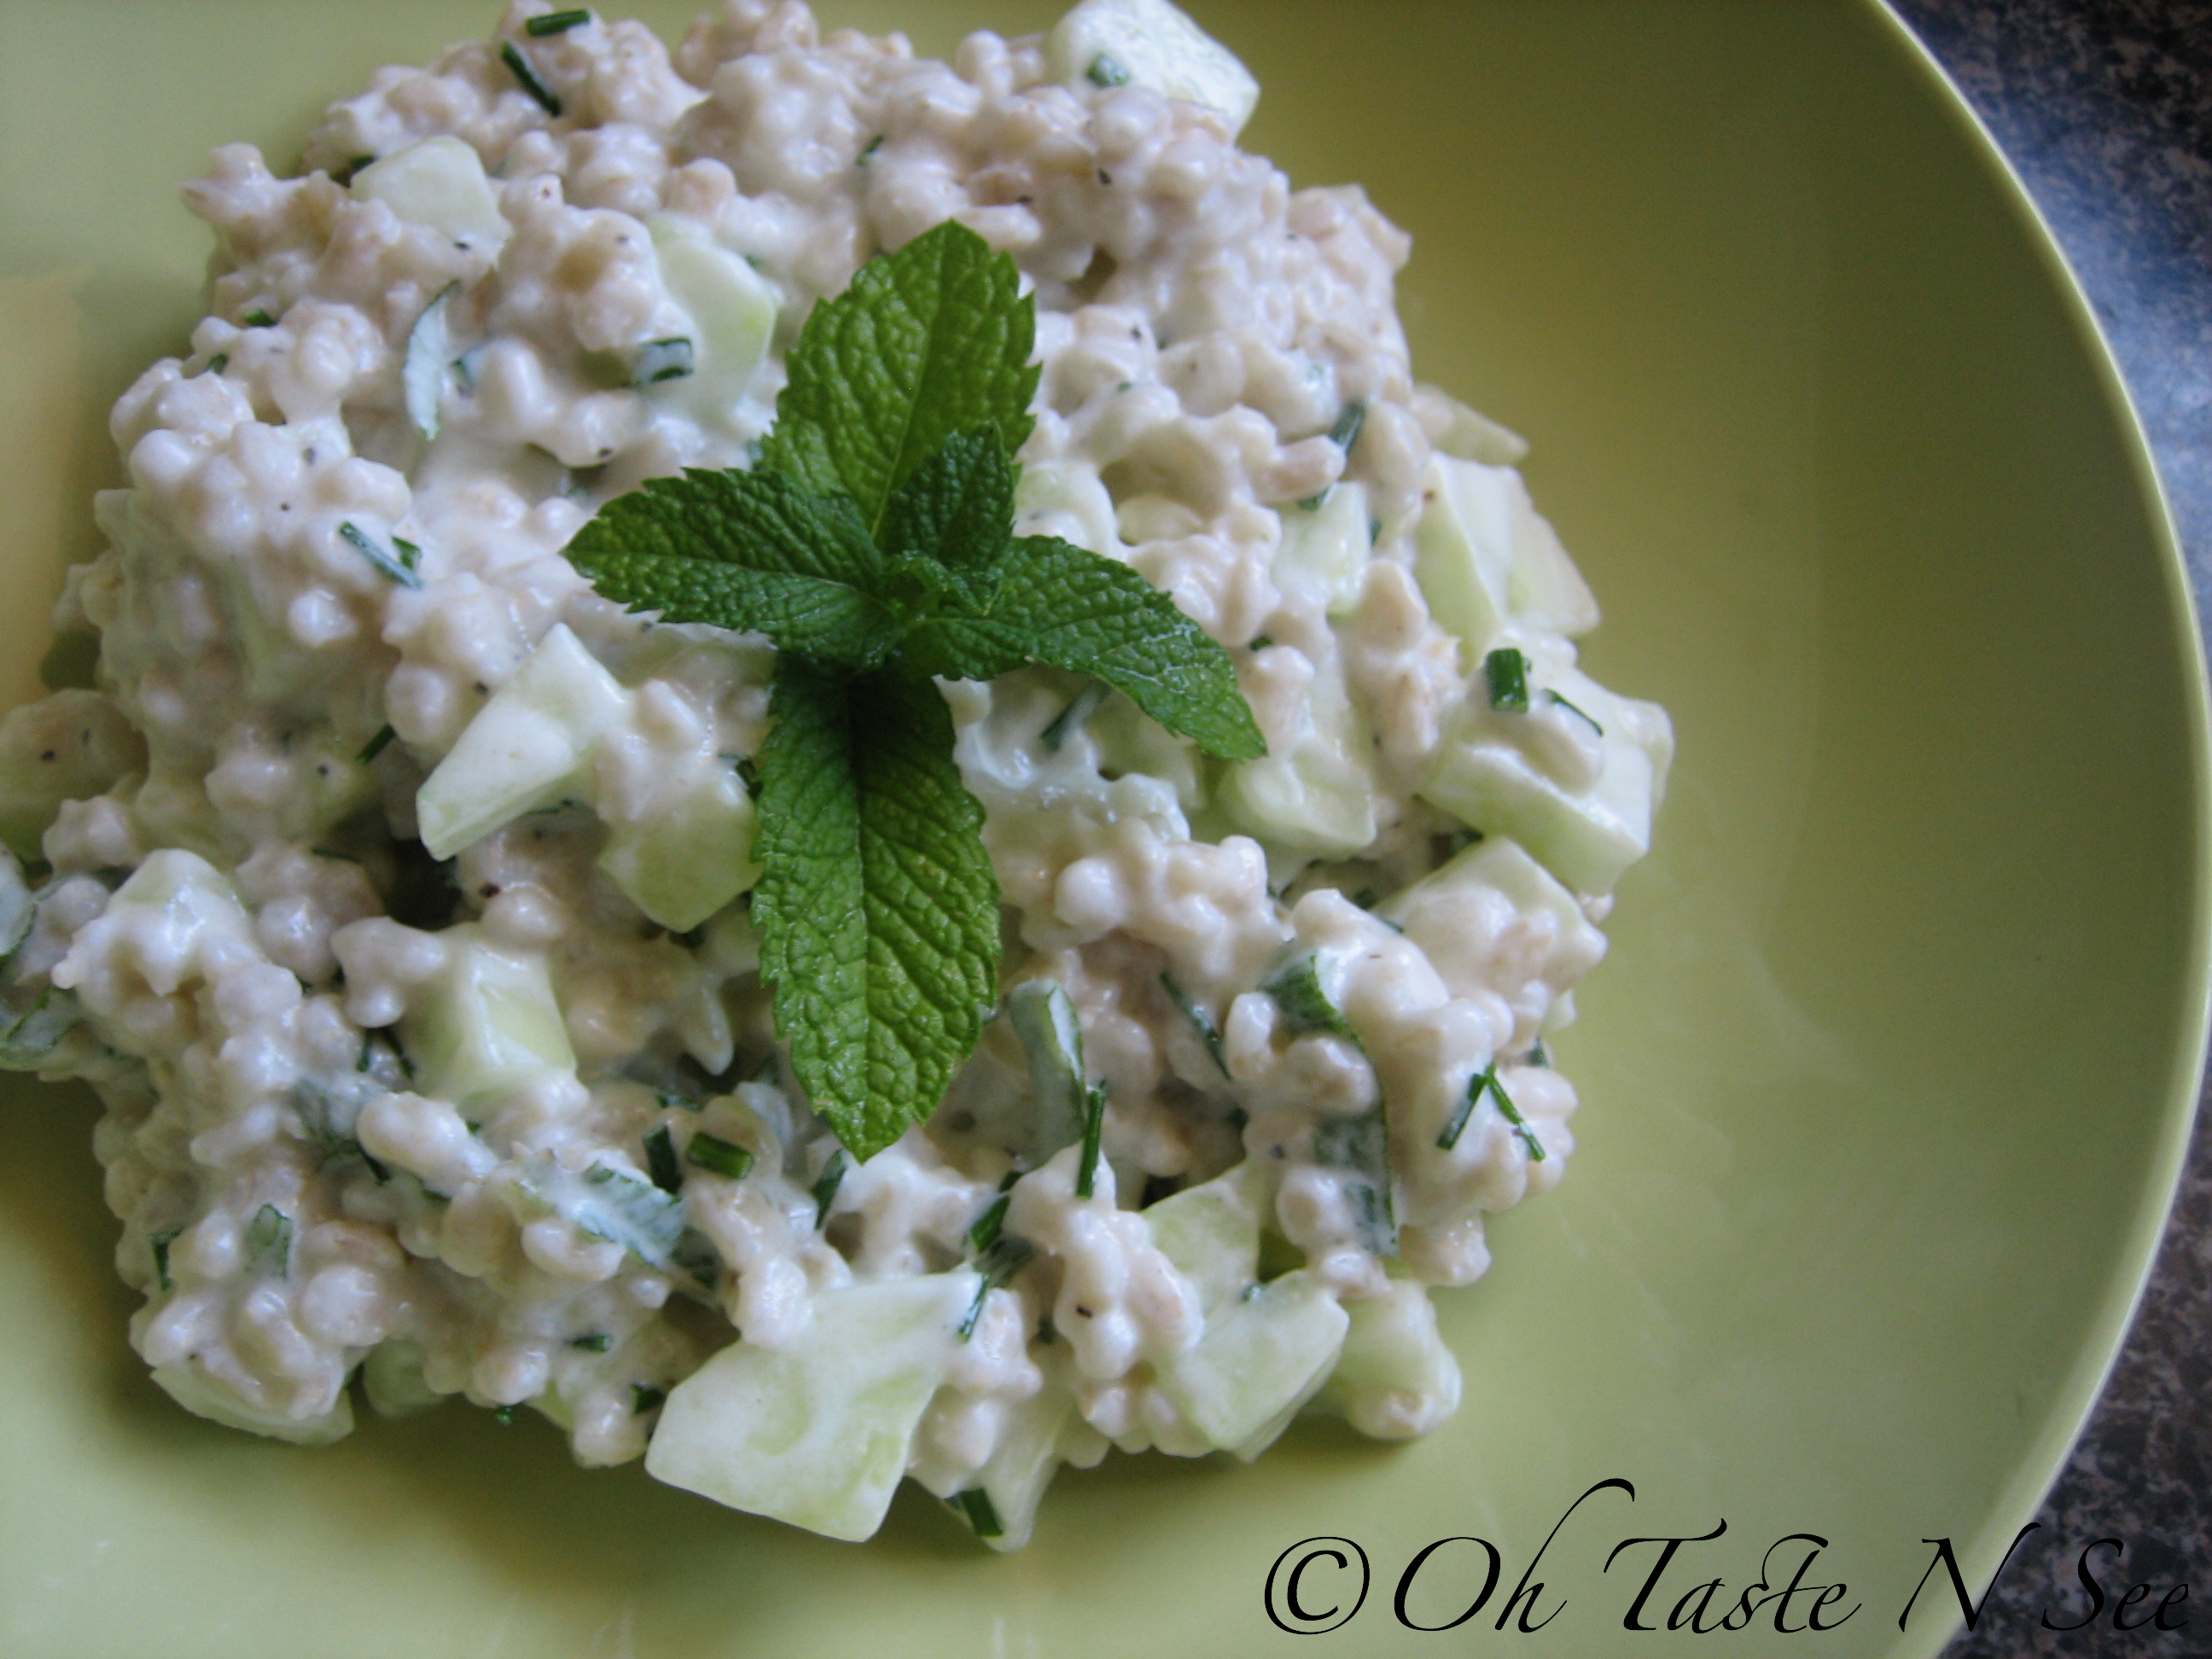 Barley Salad with Cucumber Yogurt Dressing